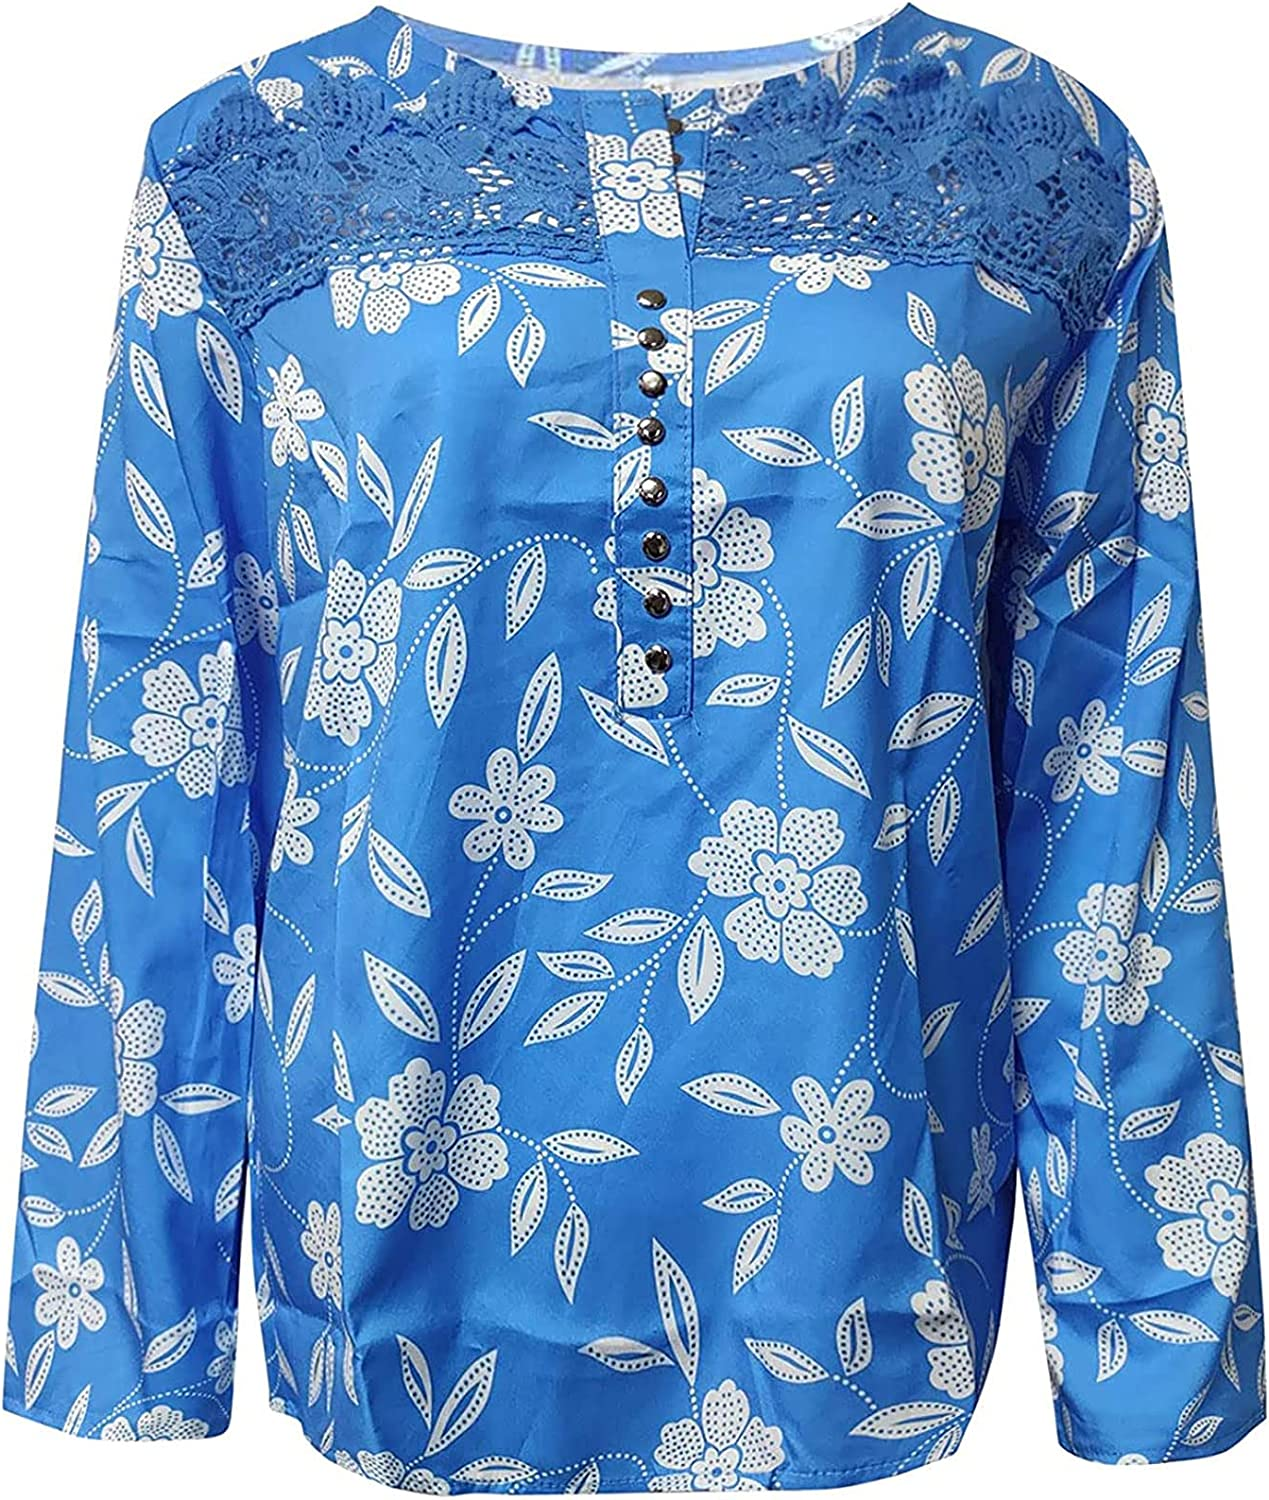 Blouses for Women Floral Print Lace Splicing Long Sleeve V-Neck Fashion Casual Tops Loose Elegant Shirts